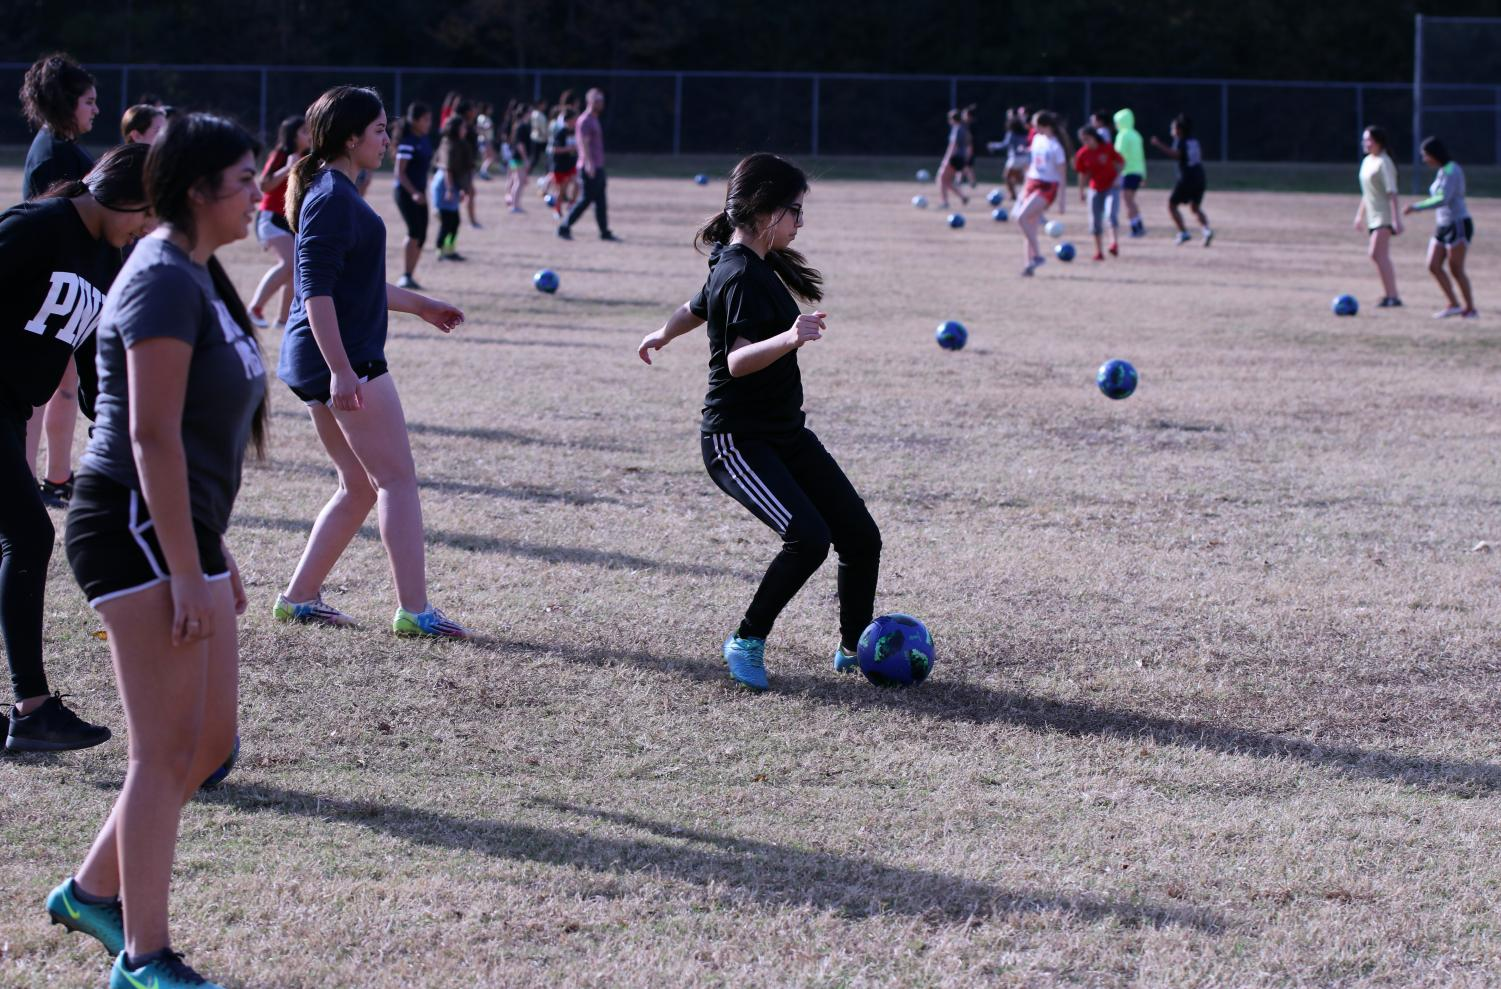 INCREASING NUMBERS. Girls tryouts had 73 players on the field. 22 players were added in comparison to last season due to coaches efforts to add in a third team.